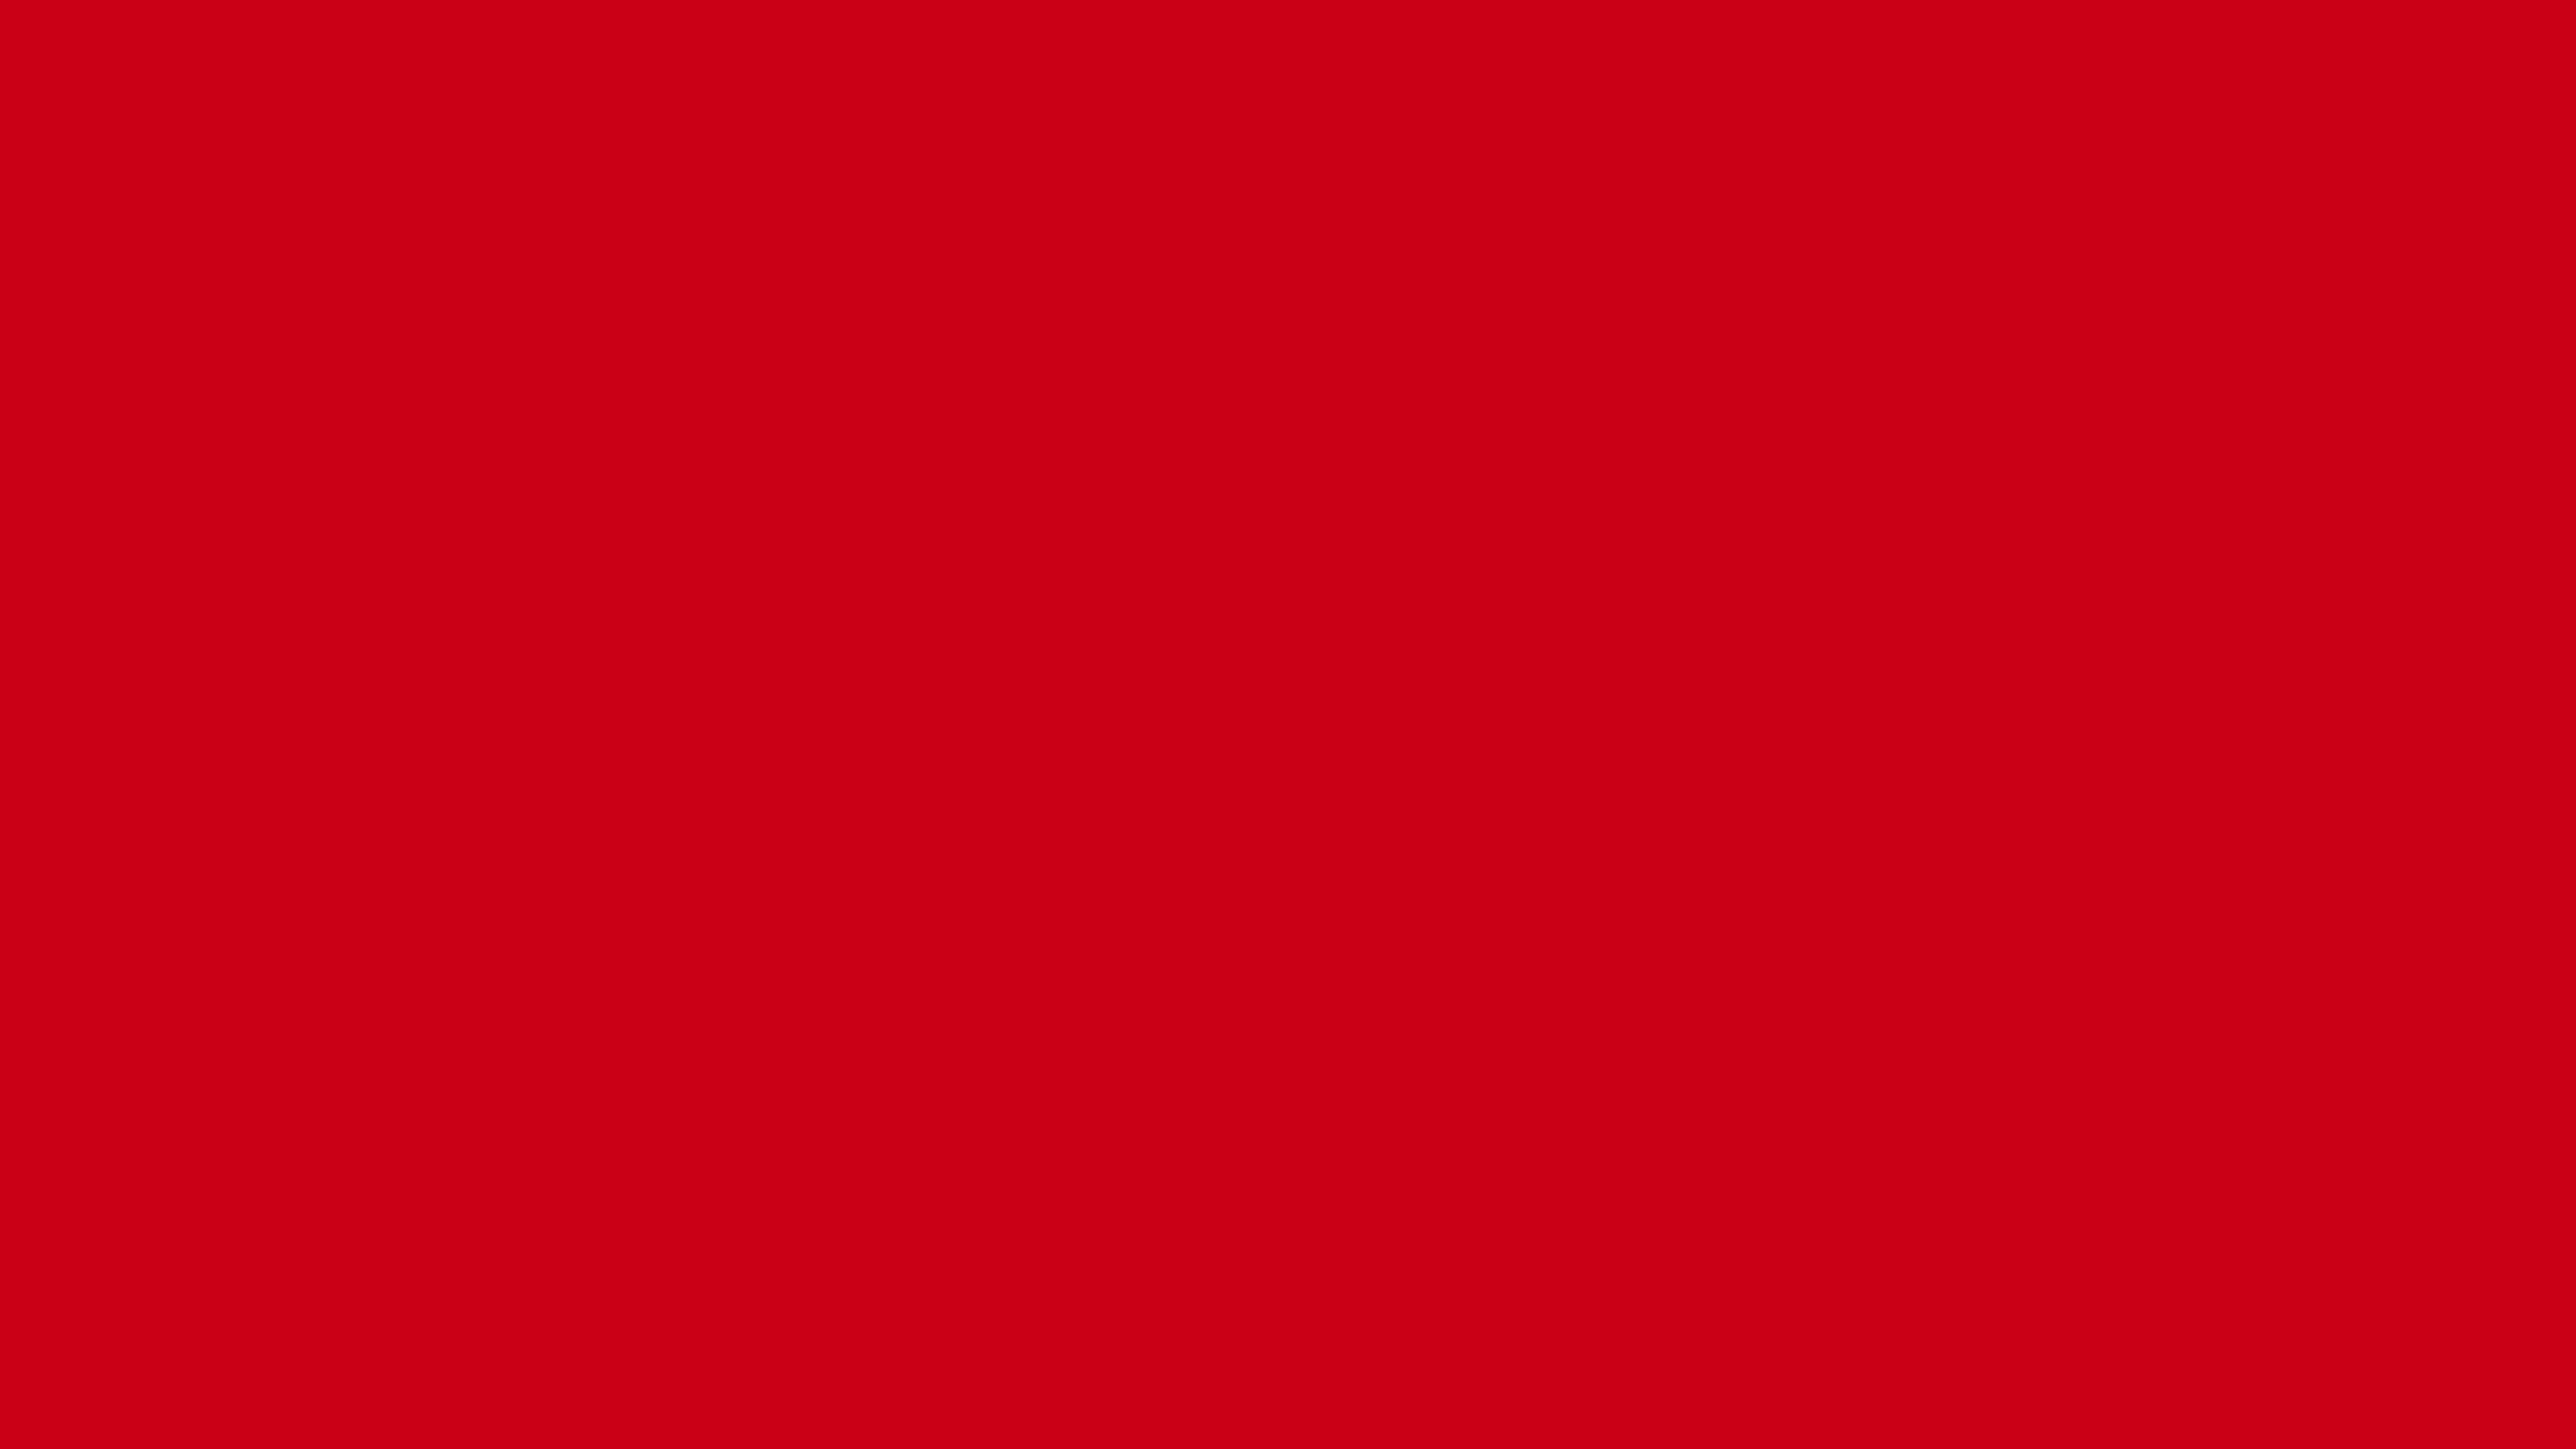 5120x2880 Harvard Crimson Solid Color Background